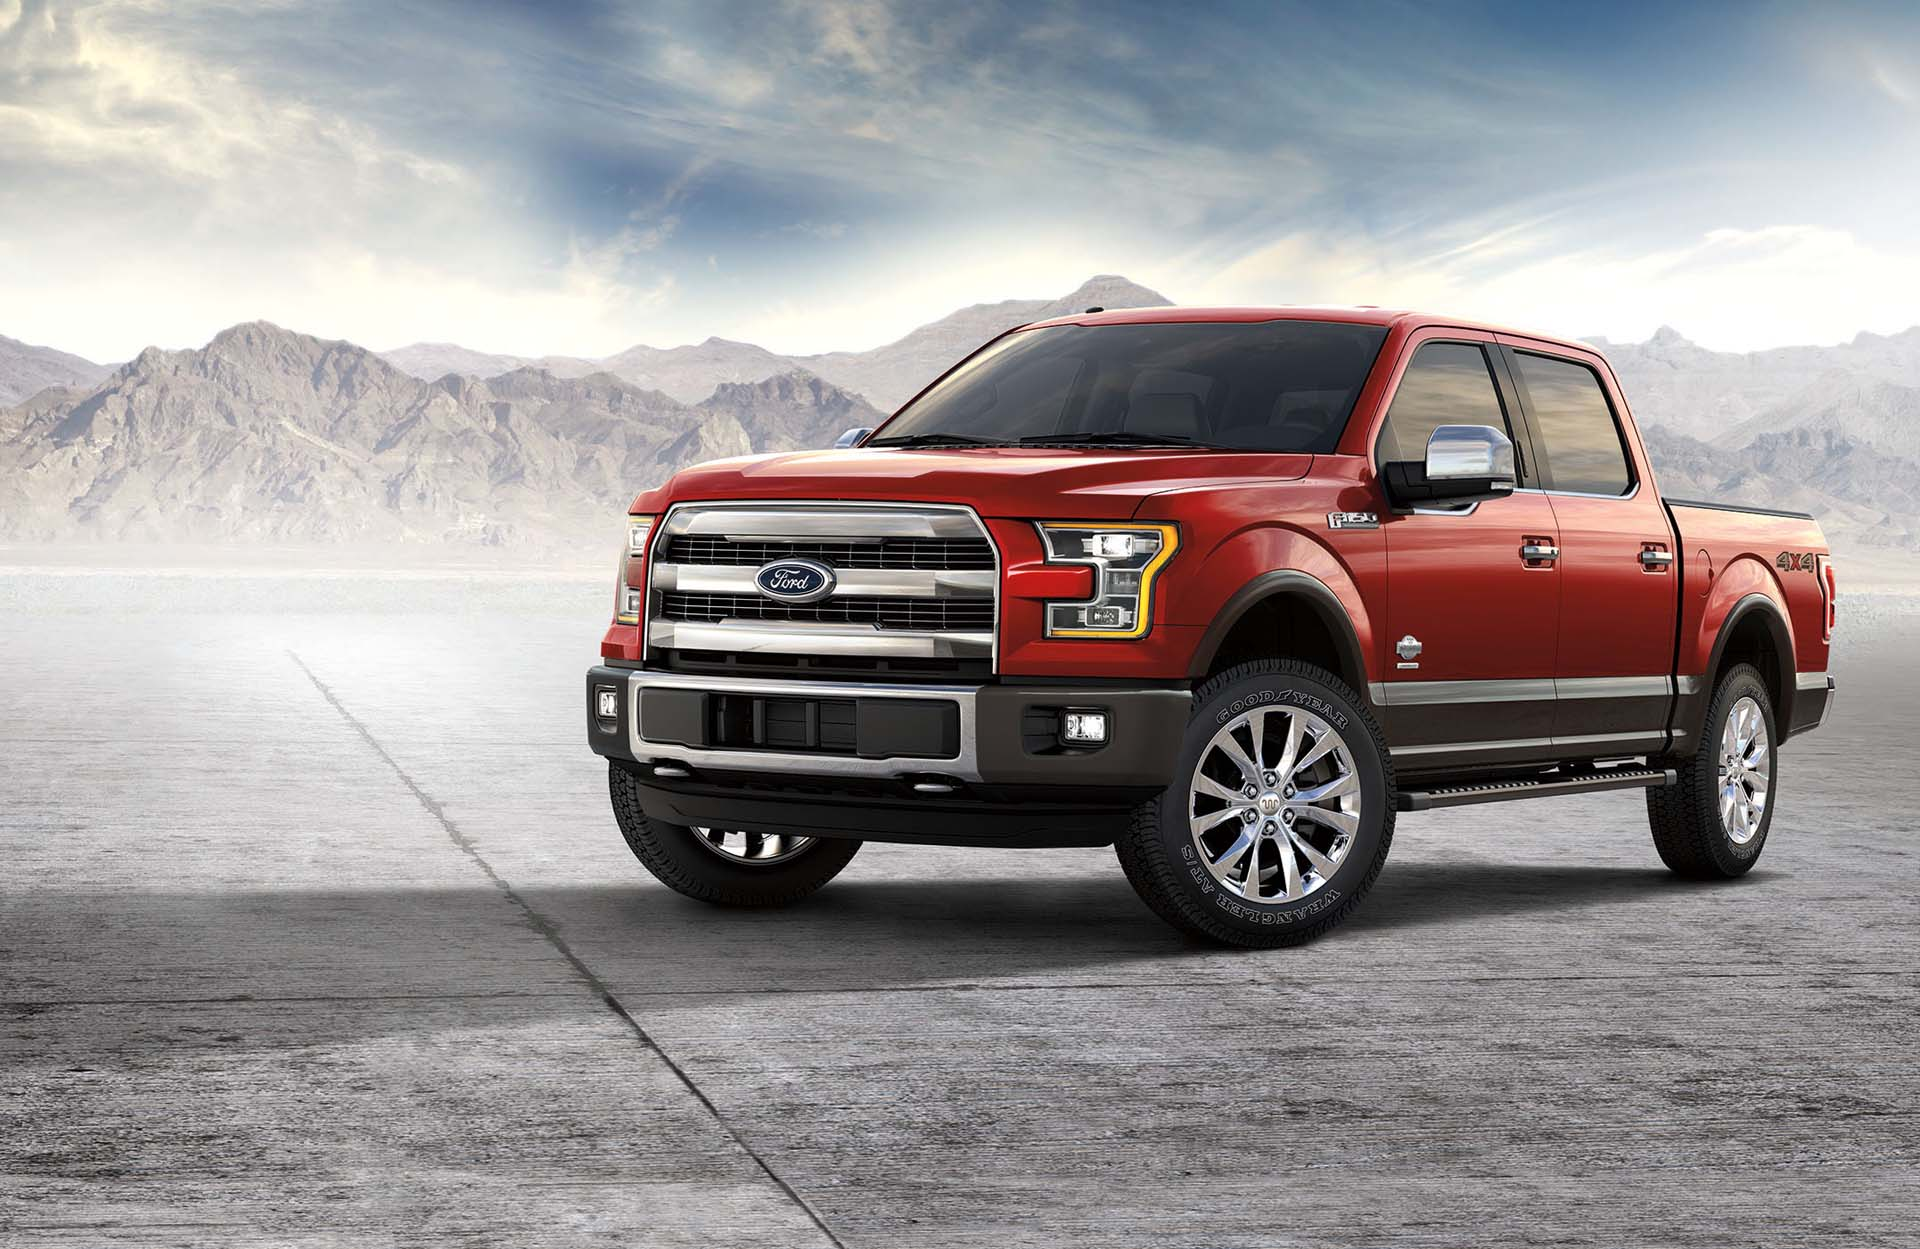 2017 ford f 150 vs 2017 ram 1500 compare trucks. Black Bedroom Furniture Sets. Home Design Ideas